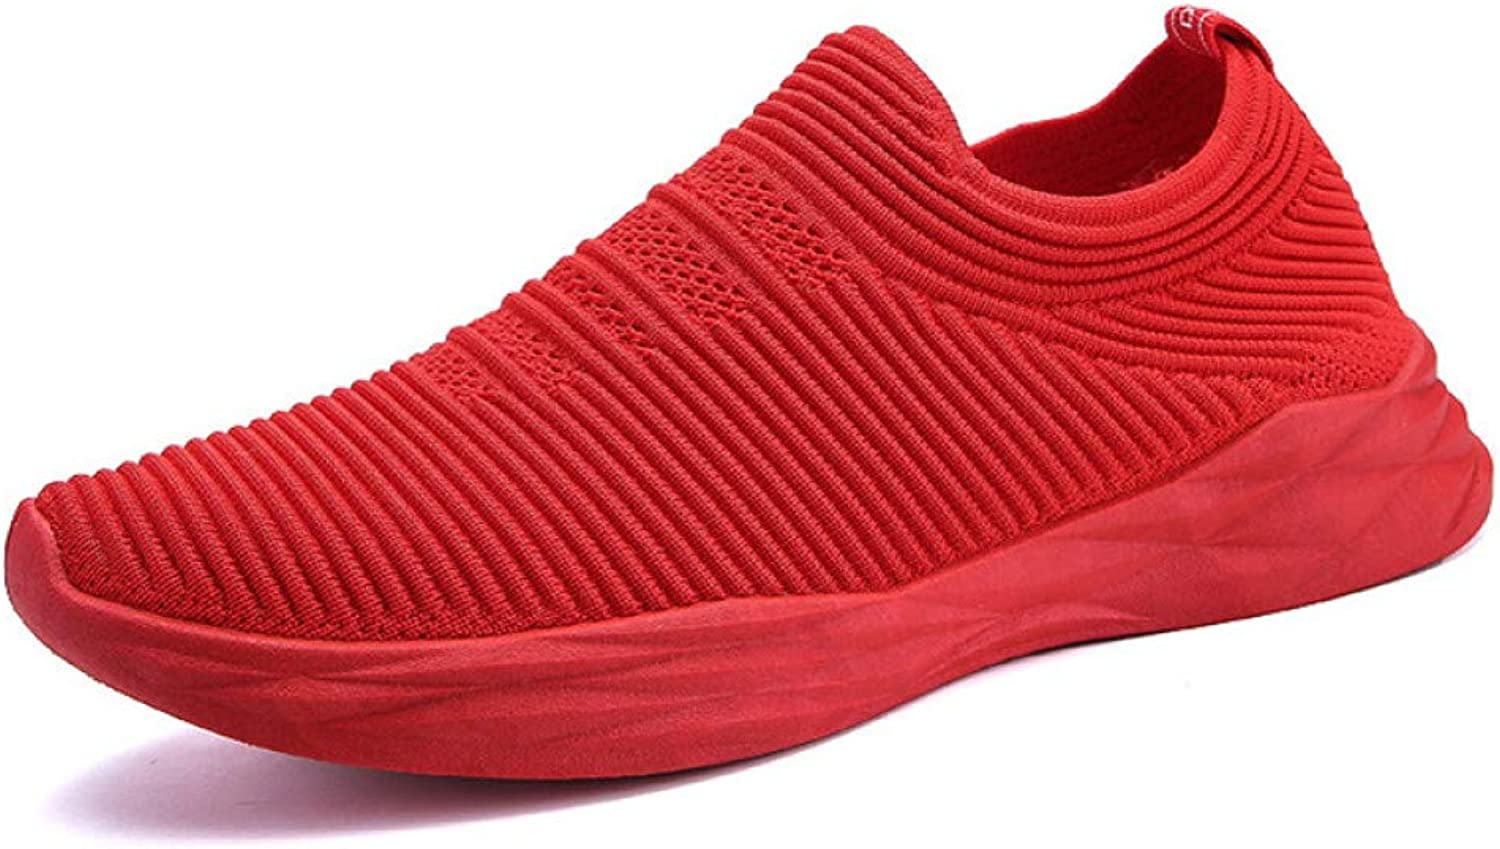 WDDGPZYDX Slip On Breathable Red Casual shoes Men Professional Stretch Loafers Men One Piece Designer Fly Weave Sneakers Men